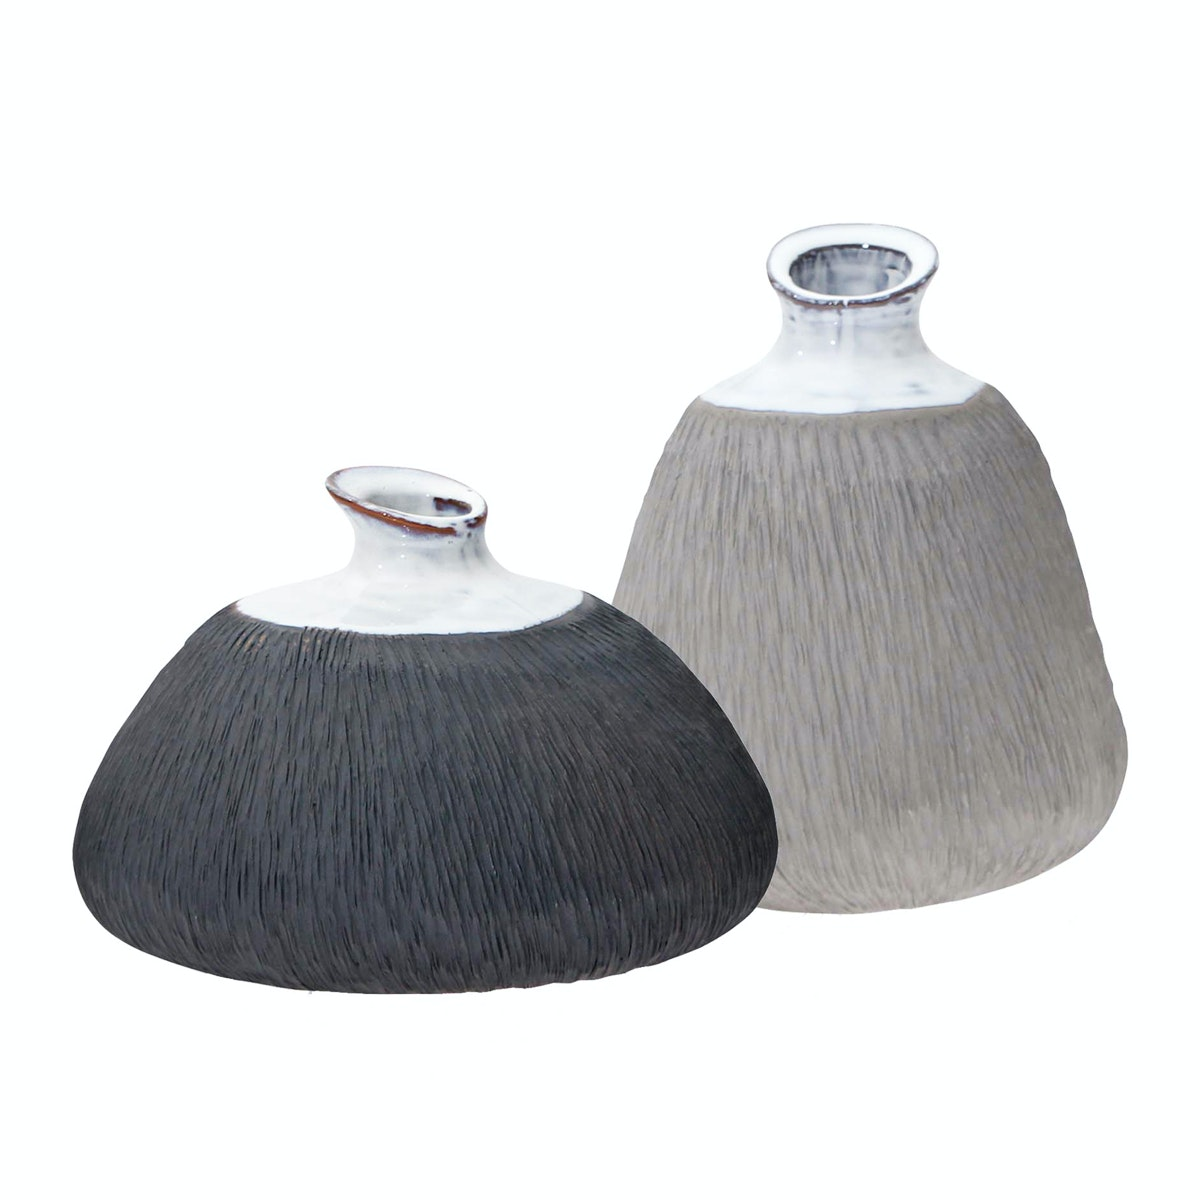 Vivere Vase Shaping Package